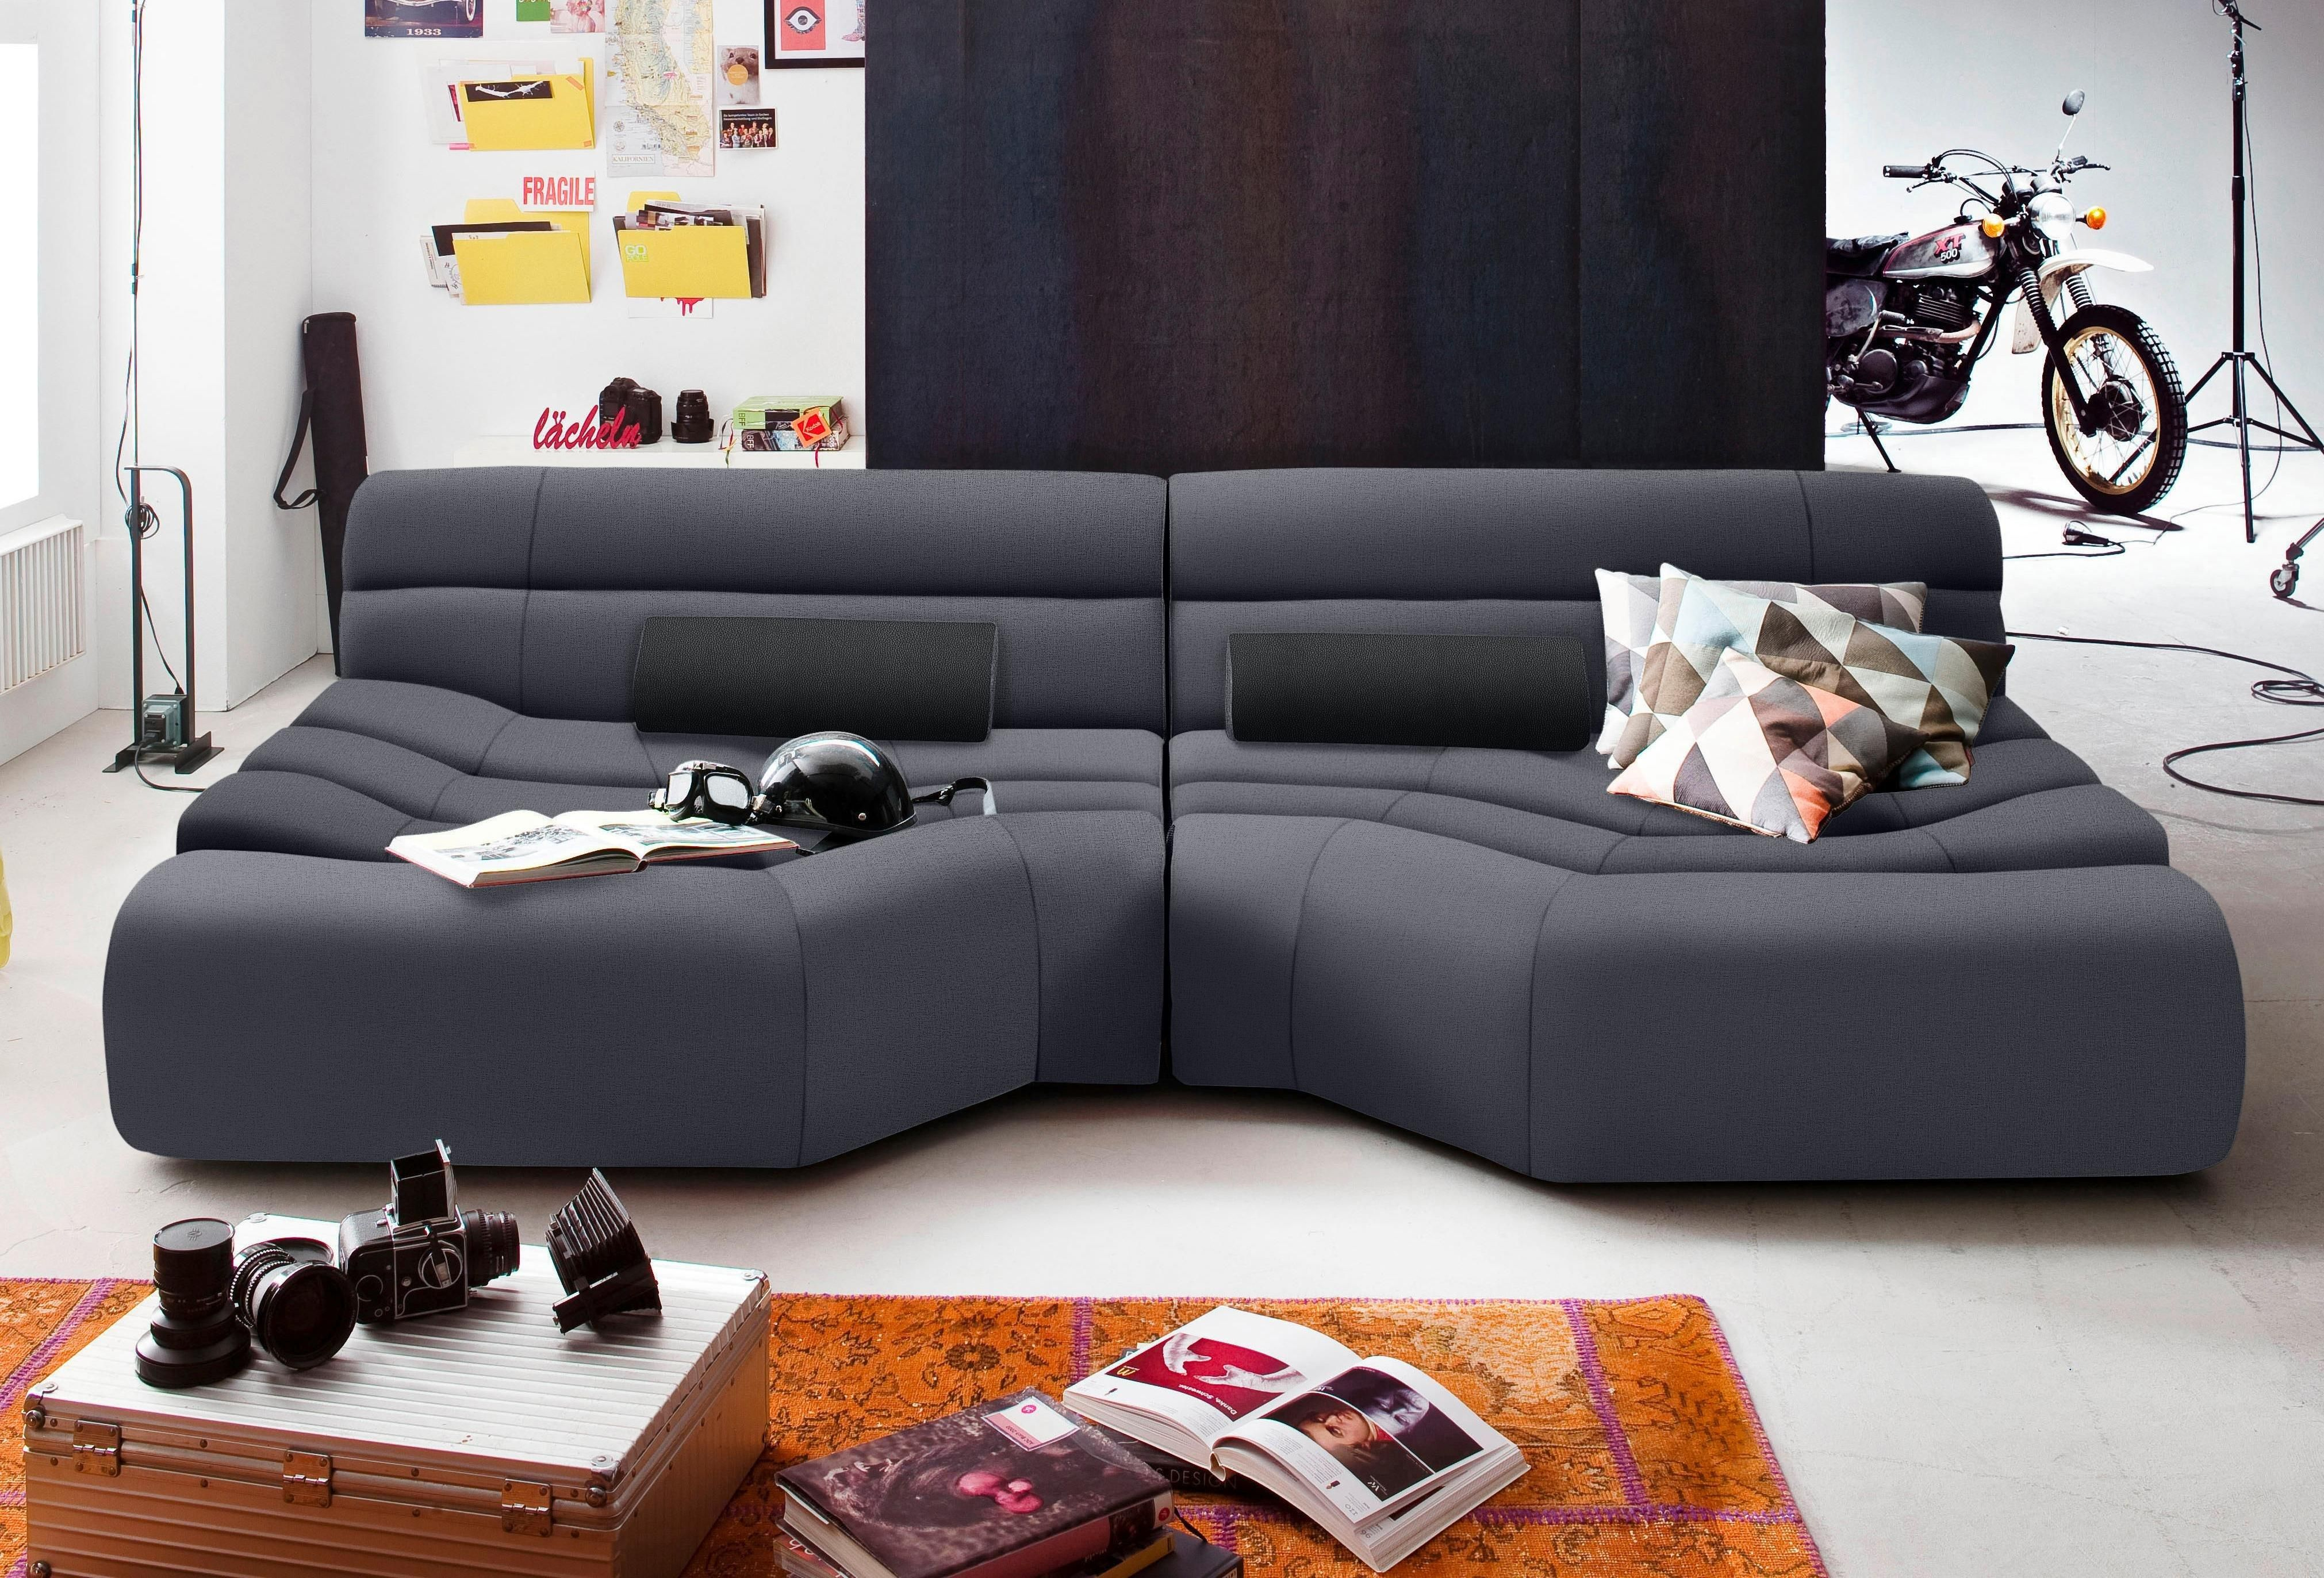 Big Sofa Trendmanufaktur Trendmanufaktur Big Sofa In 2019 Einrichtung